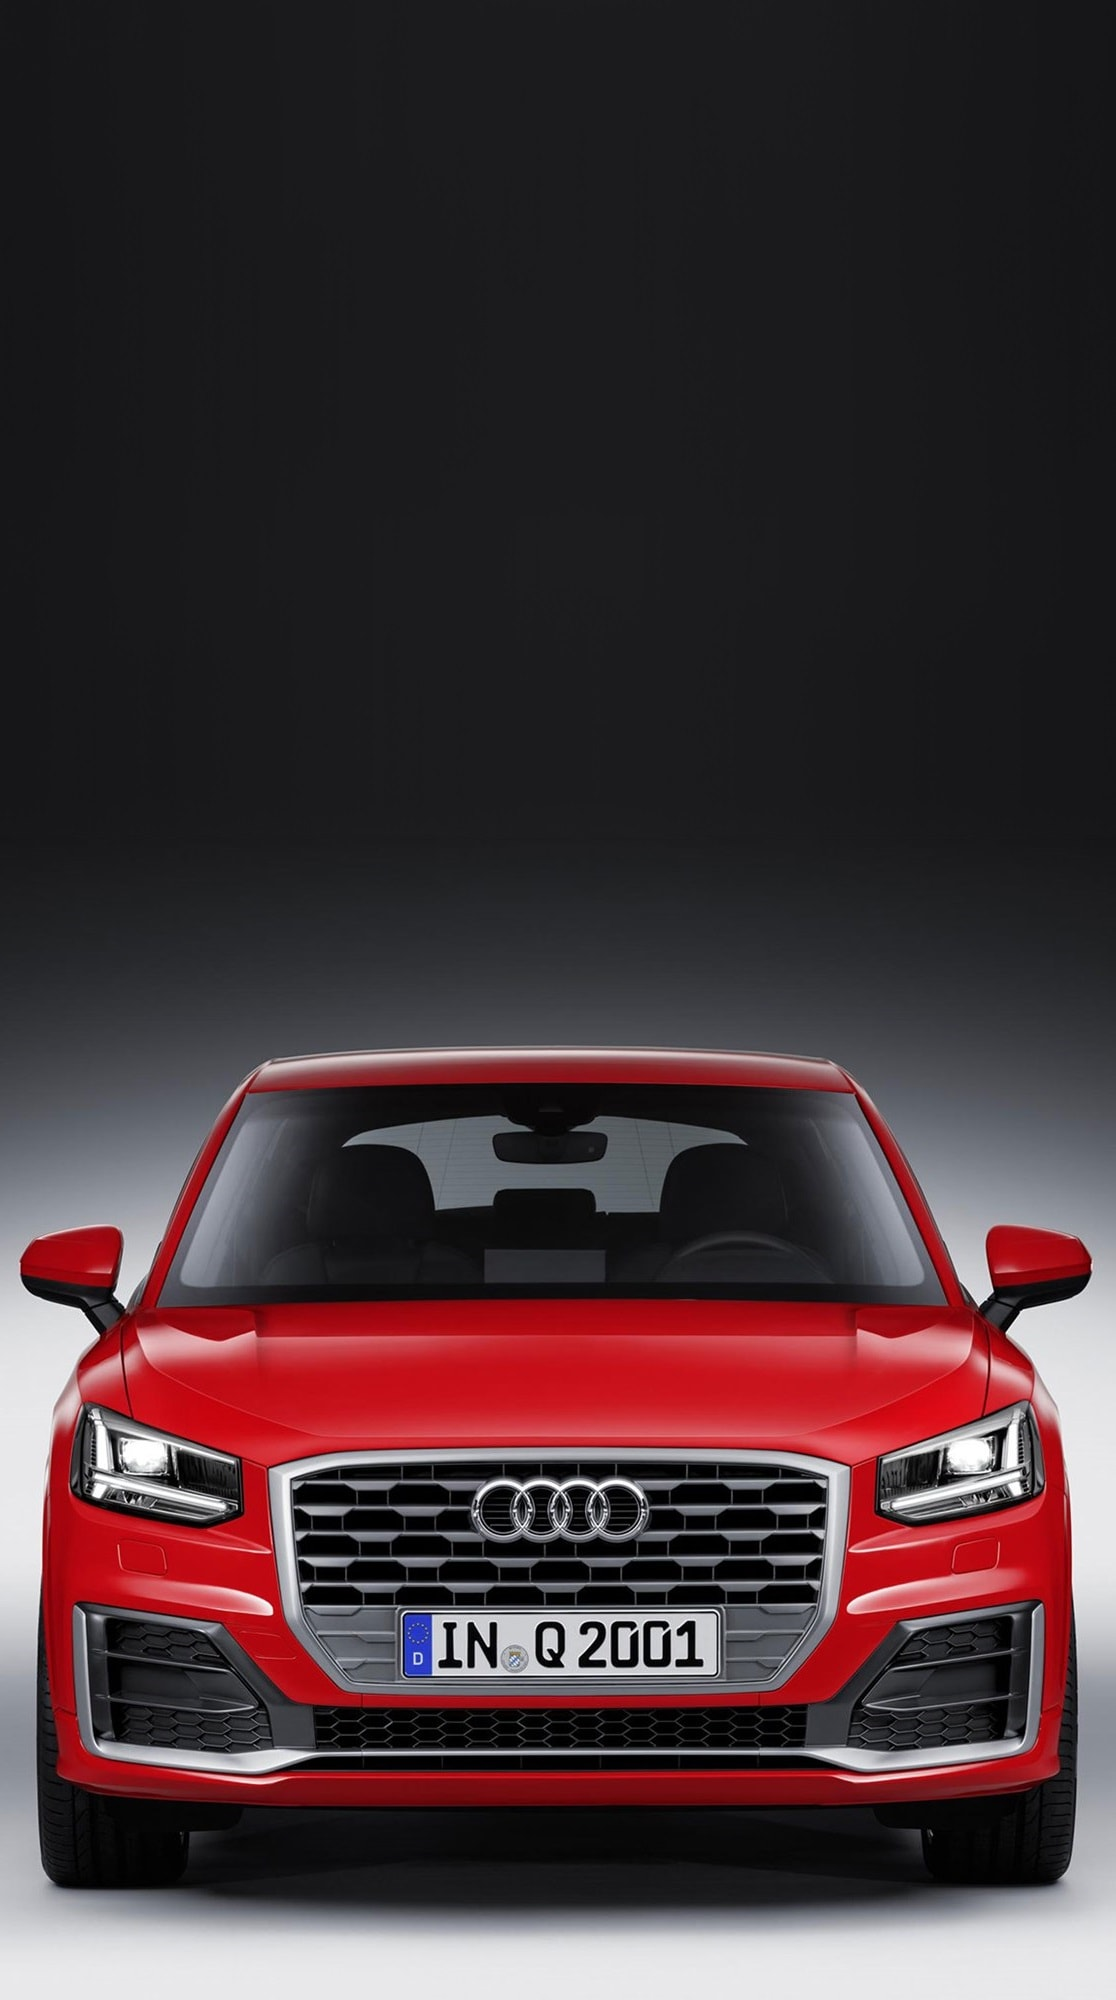 Audi Q2 For mobile